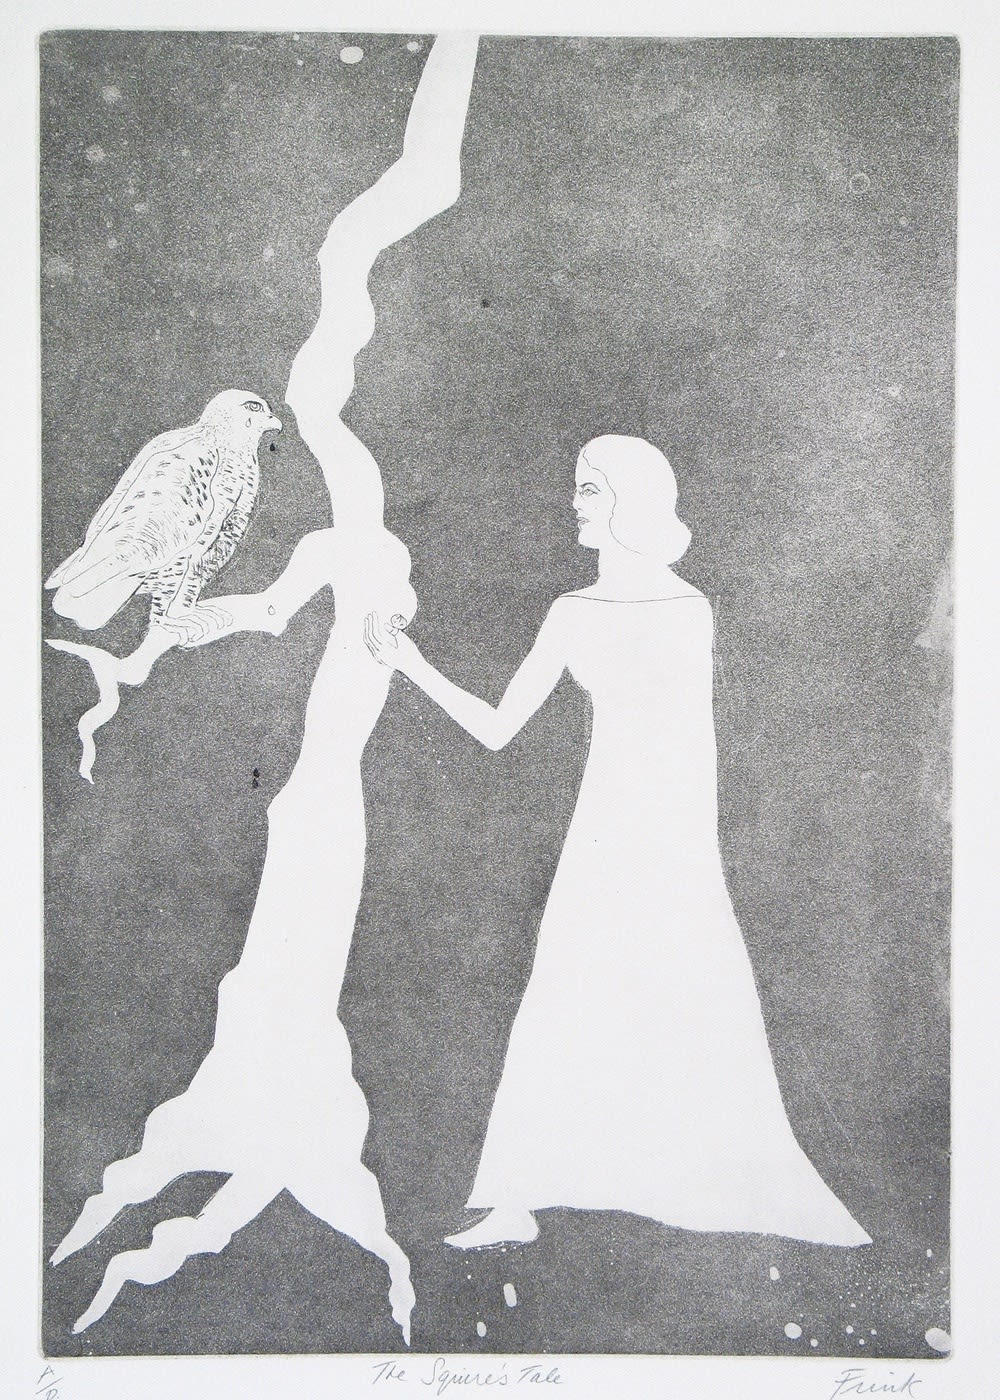 Elizabeth Frink, The Squire's Tale, 1972 Aquatint with Etching